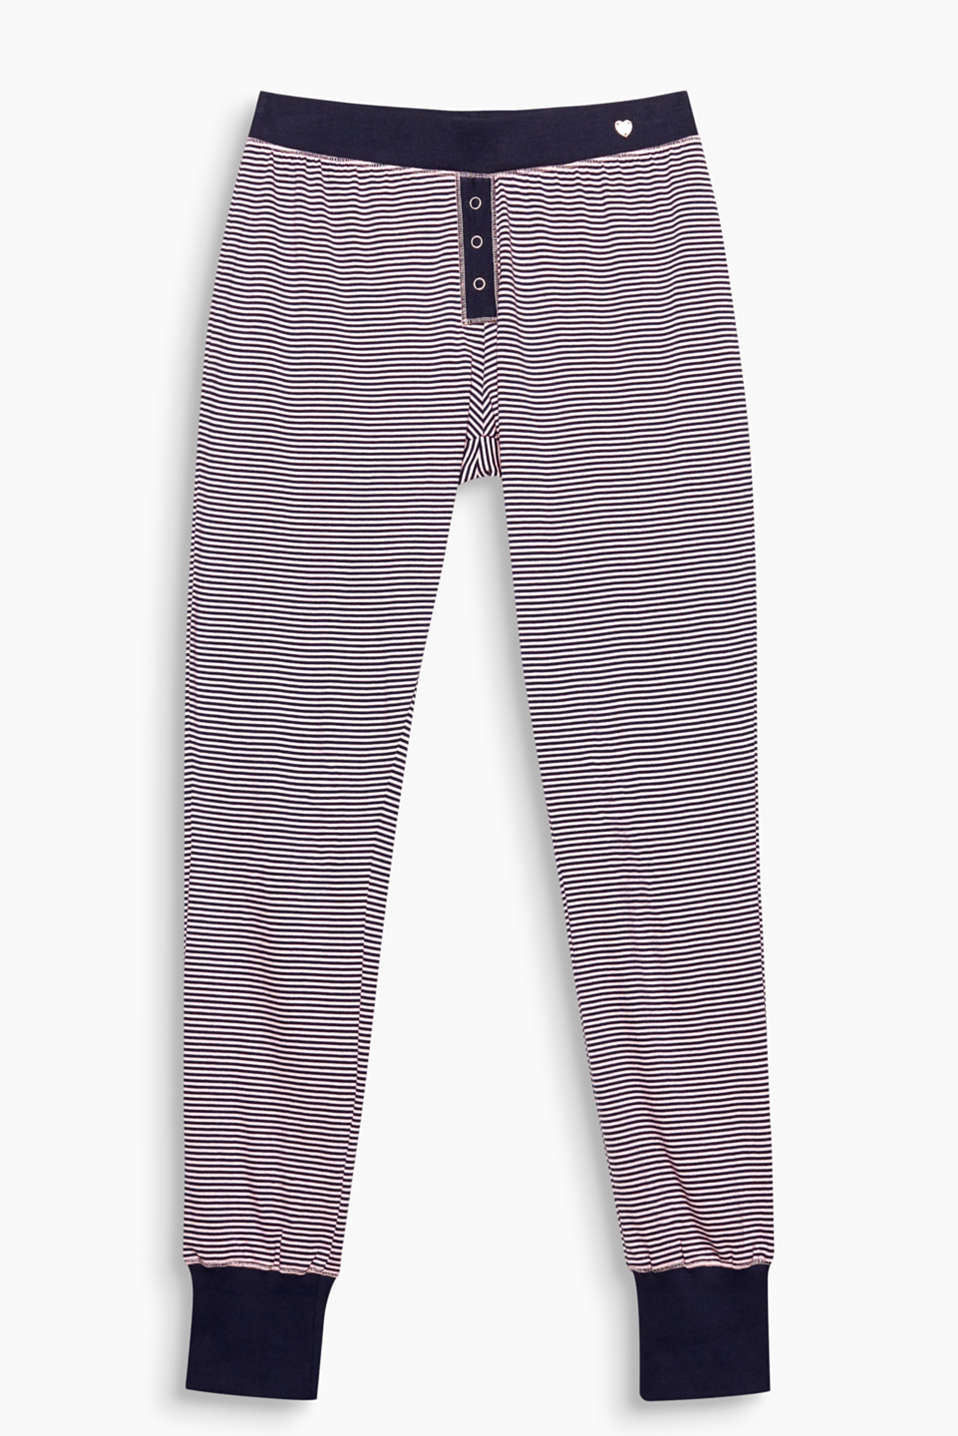 A happy look for a good mood: These soft jersey pyjama bottoms feature an all-over striped look!